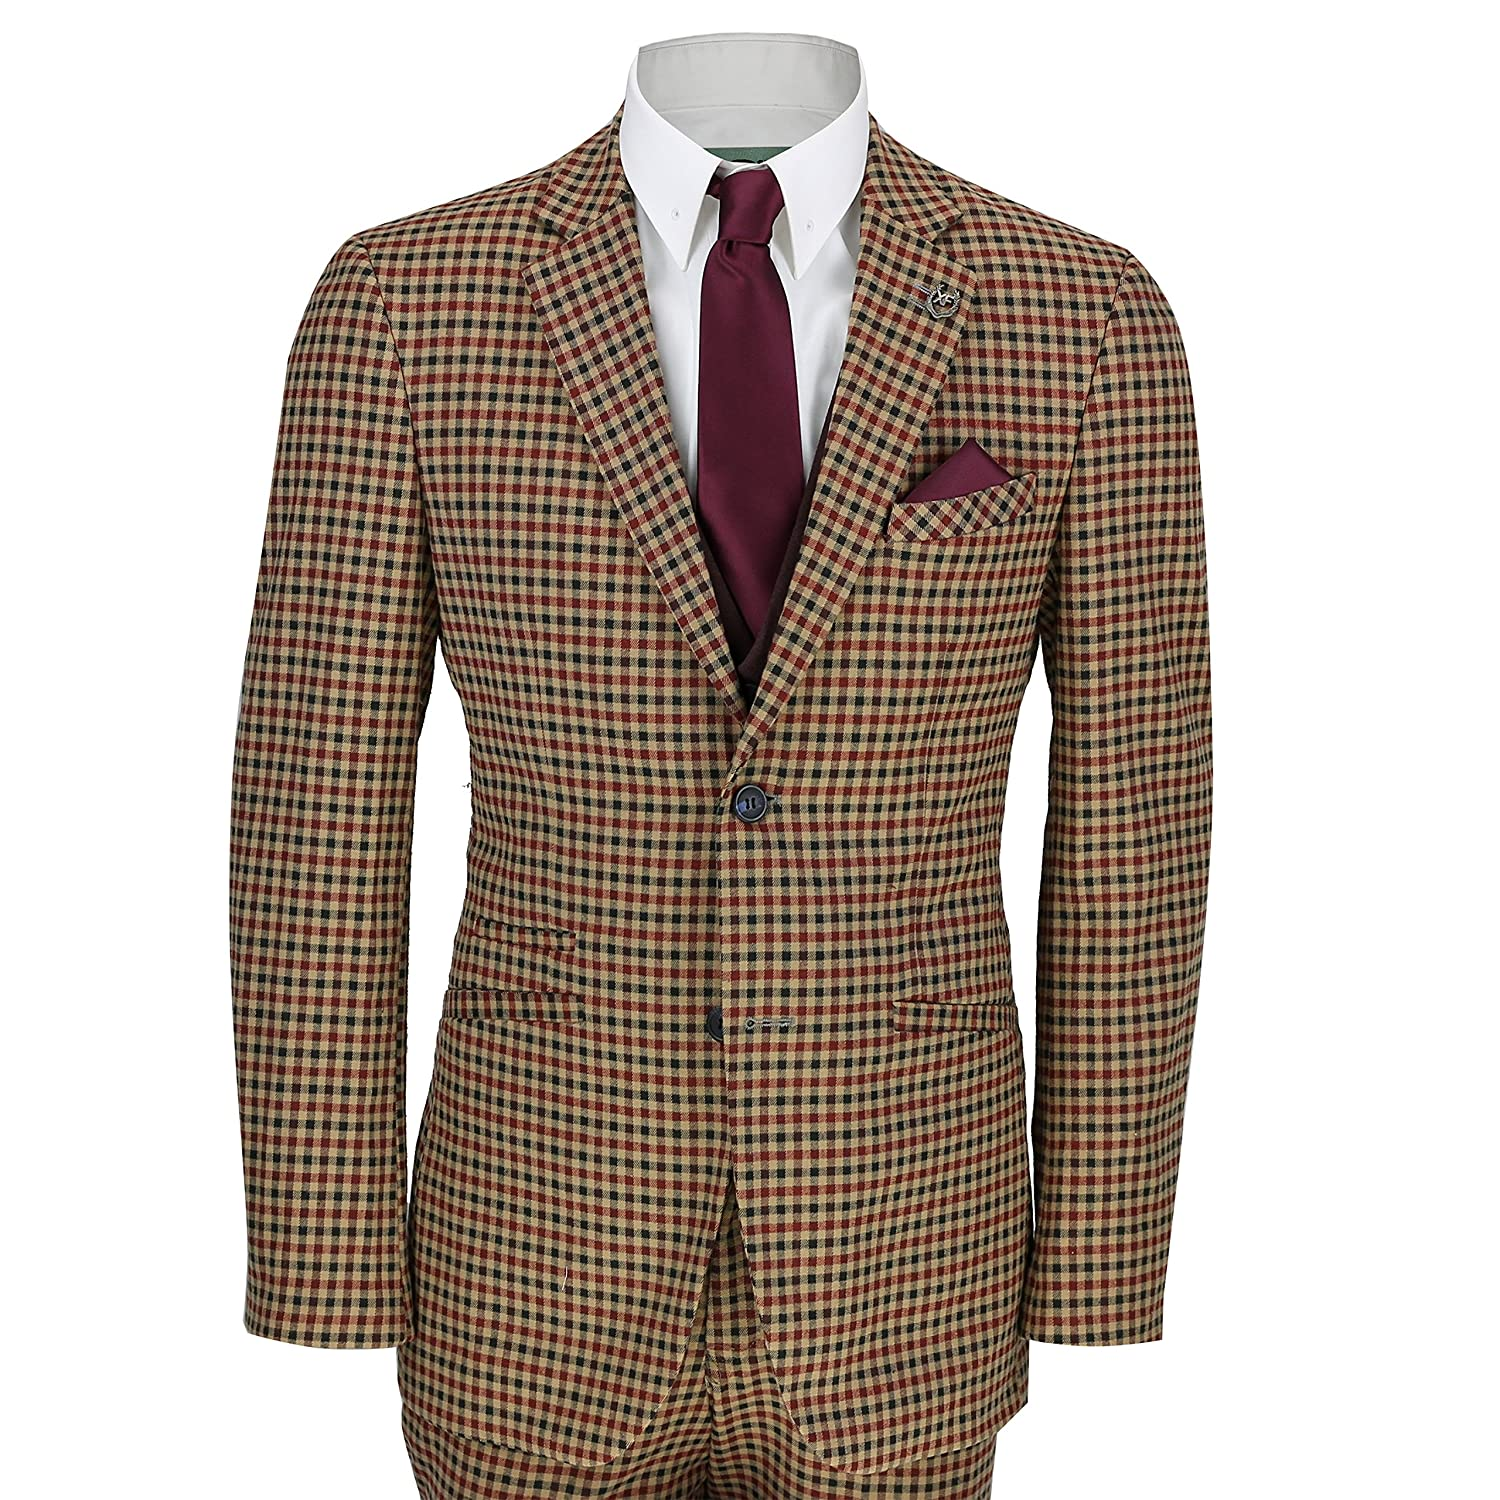 1920s Men's Suits History Xposed Mens Vintage 3 Piece Plaid Tartan Check Slim Tailored Fit Suit Jacket Waistcoat Trouser £104.99 AT vintagedancer.com